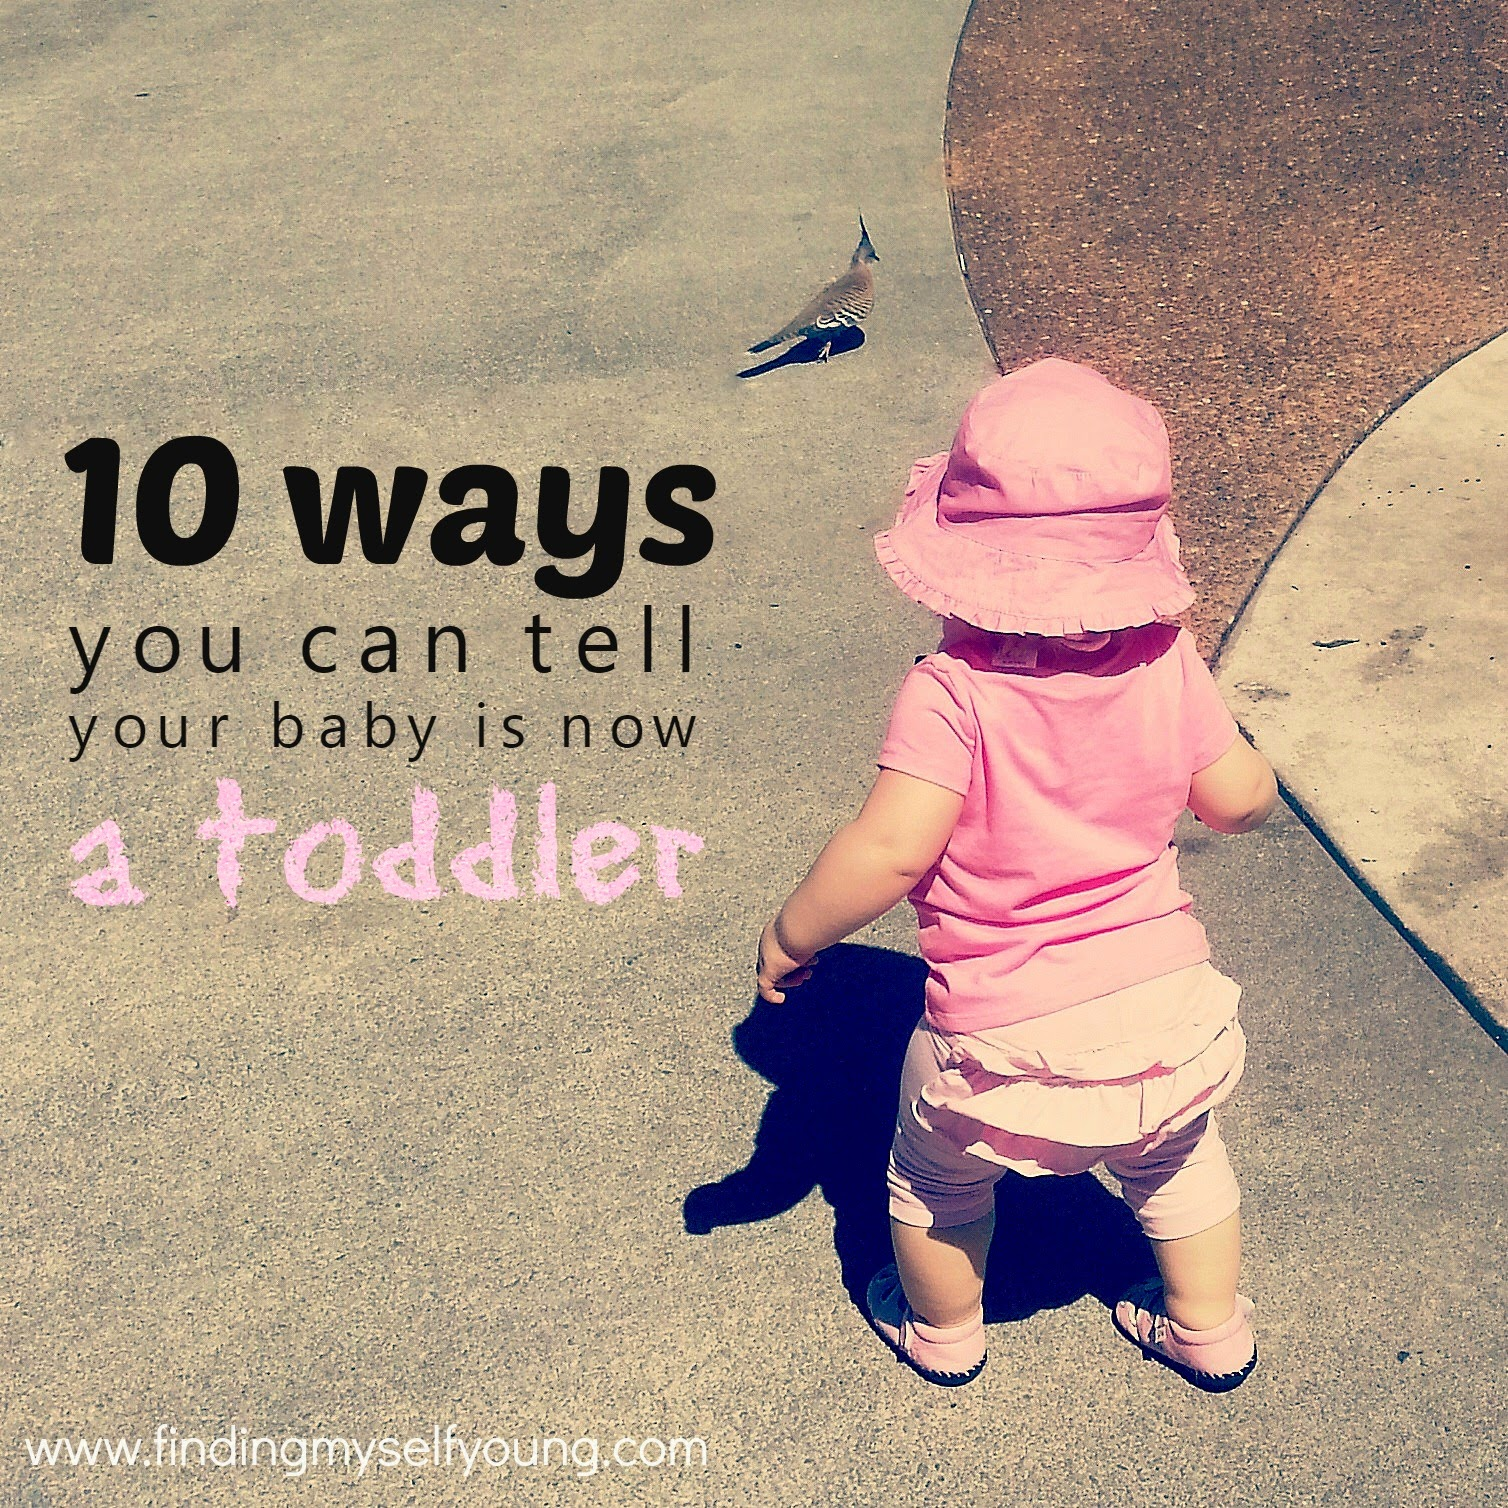 10 ways to tell your baby is now a toddler